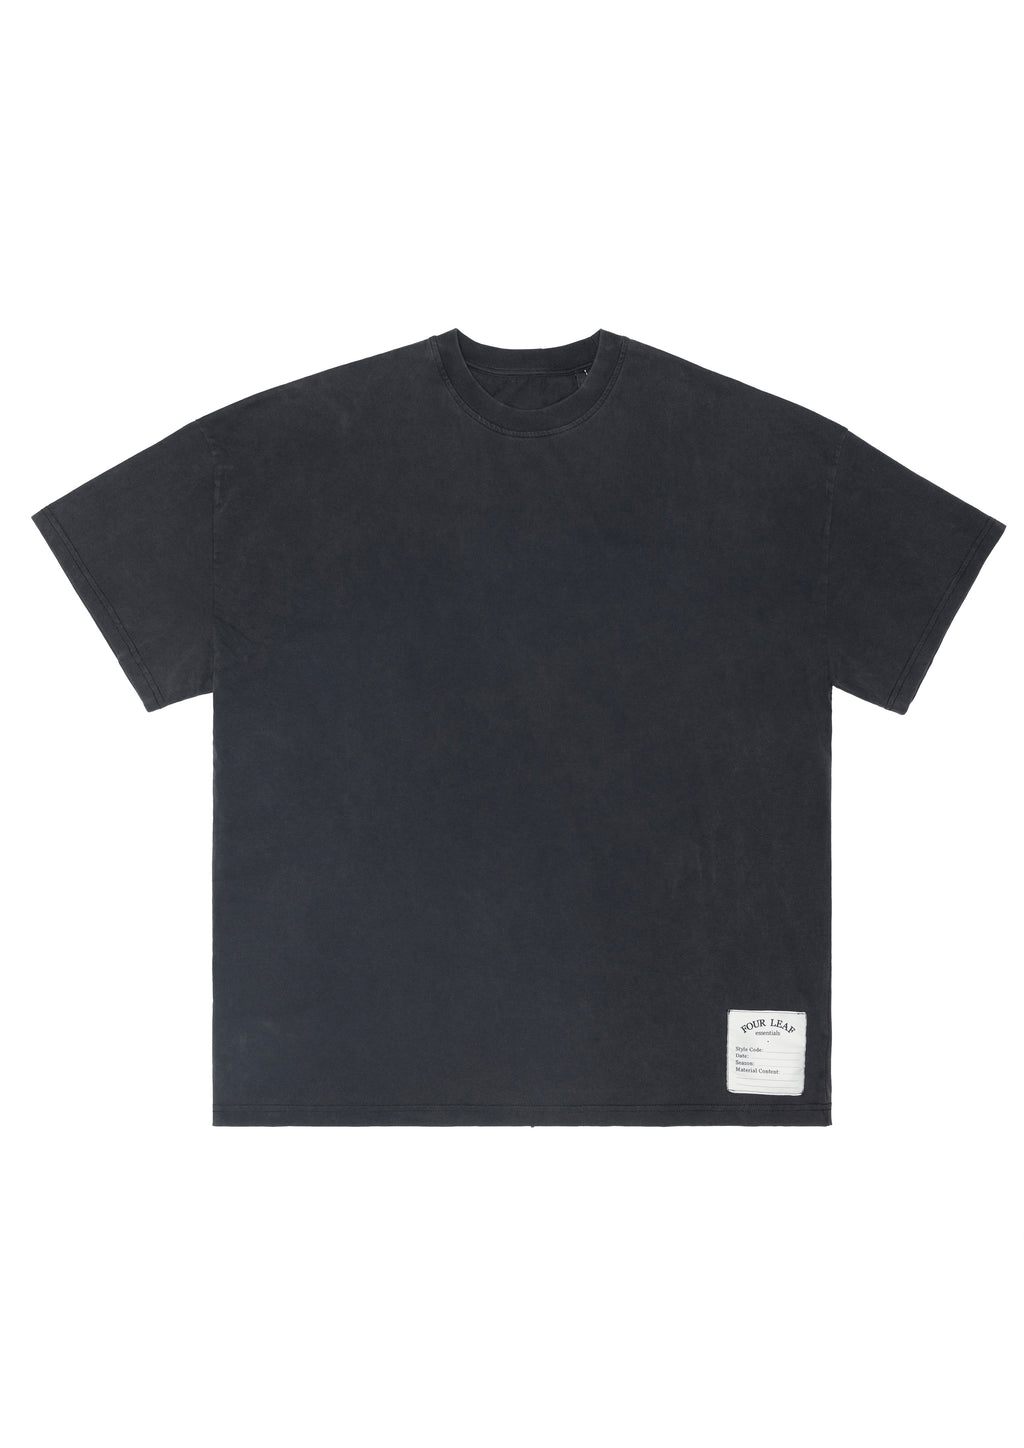 GRANGE TEE VINTAGE GREY WASHED MENS